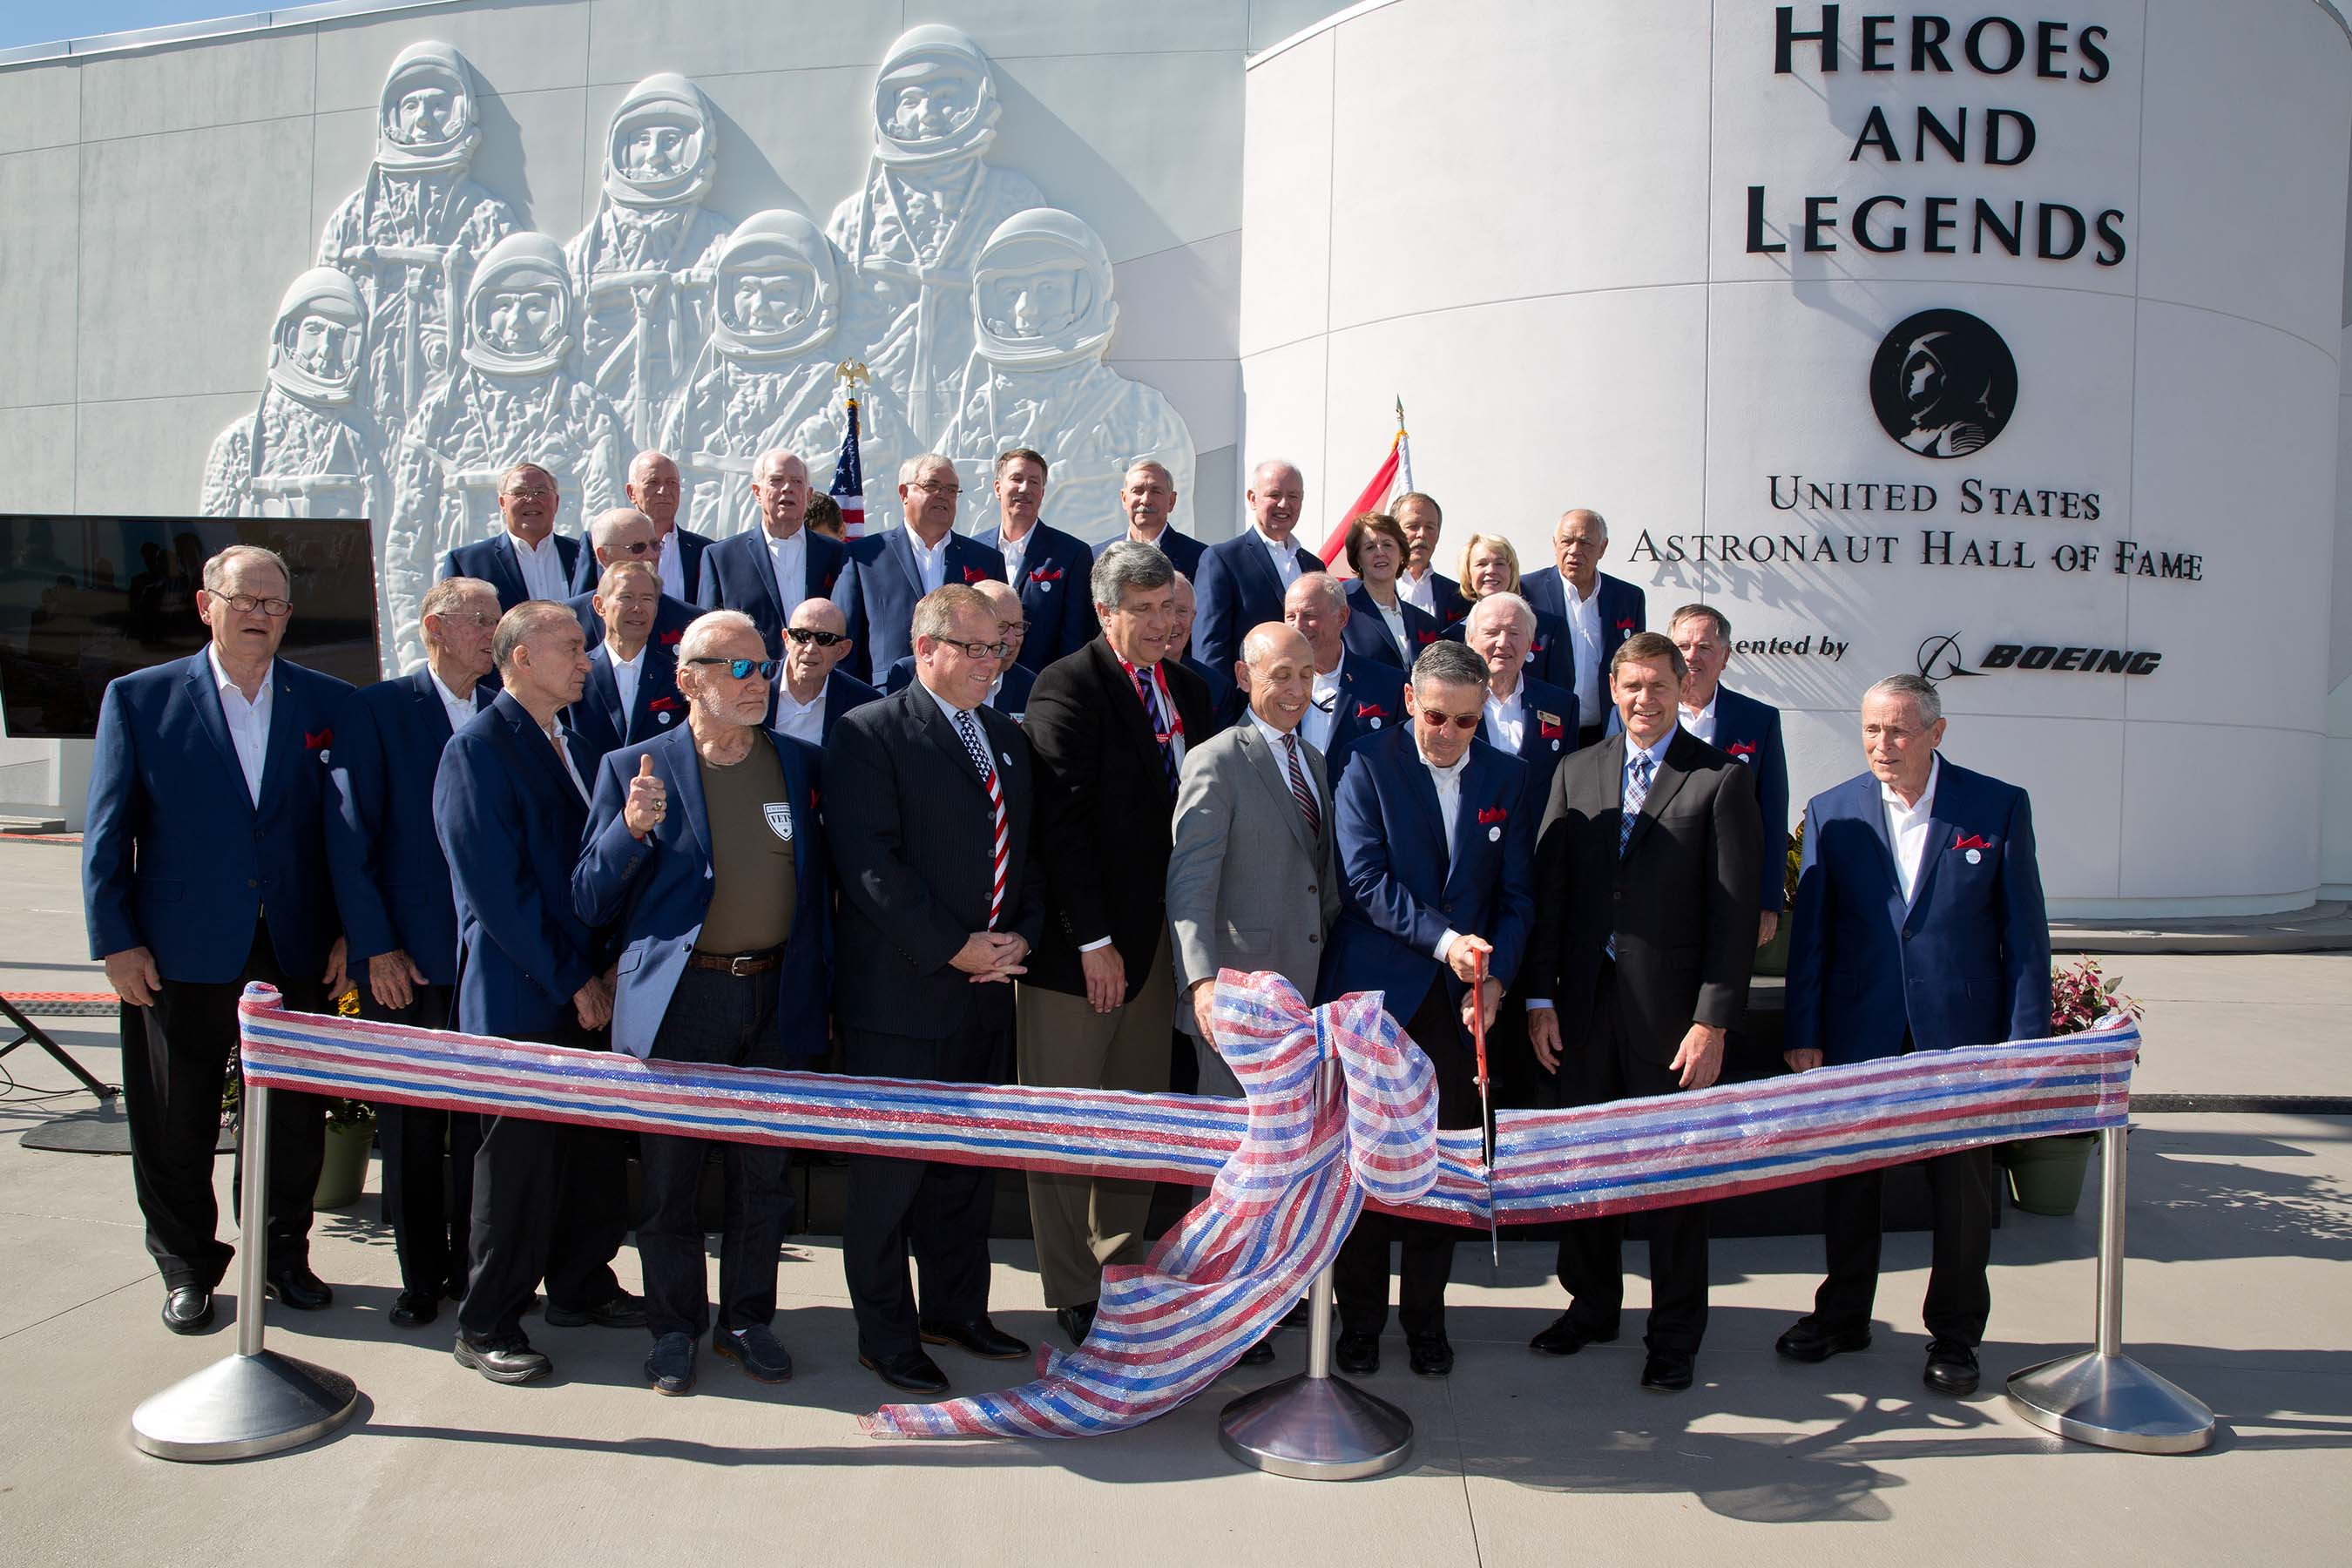 Representatives of NASA, Boeing and Delaware North, which operates Kennedy Space Center Visitor Complex for NASA, are joined by 25 Hall of Fame astronauts from the Mercury, Gemini, Apollo and Space Shuttle programs to celebrate the opening of Heroes & Legends featuring the U.S. Astronaut Hall of Fame presented by Boeing.